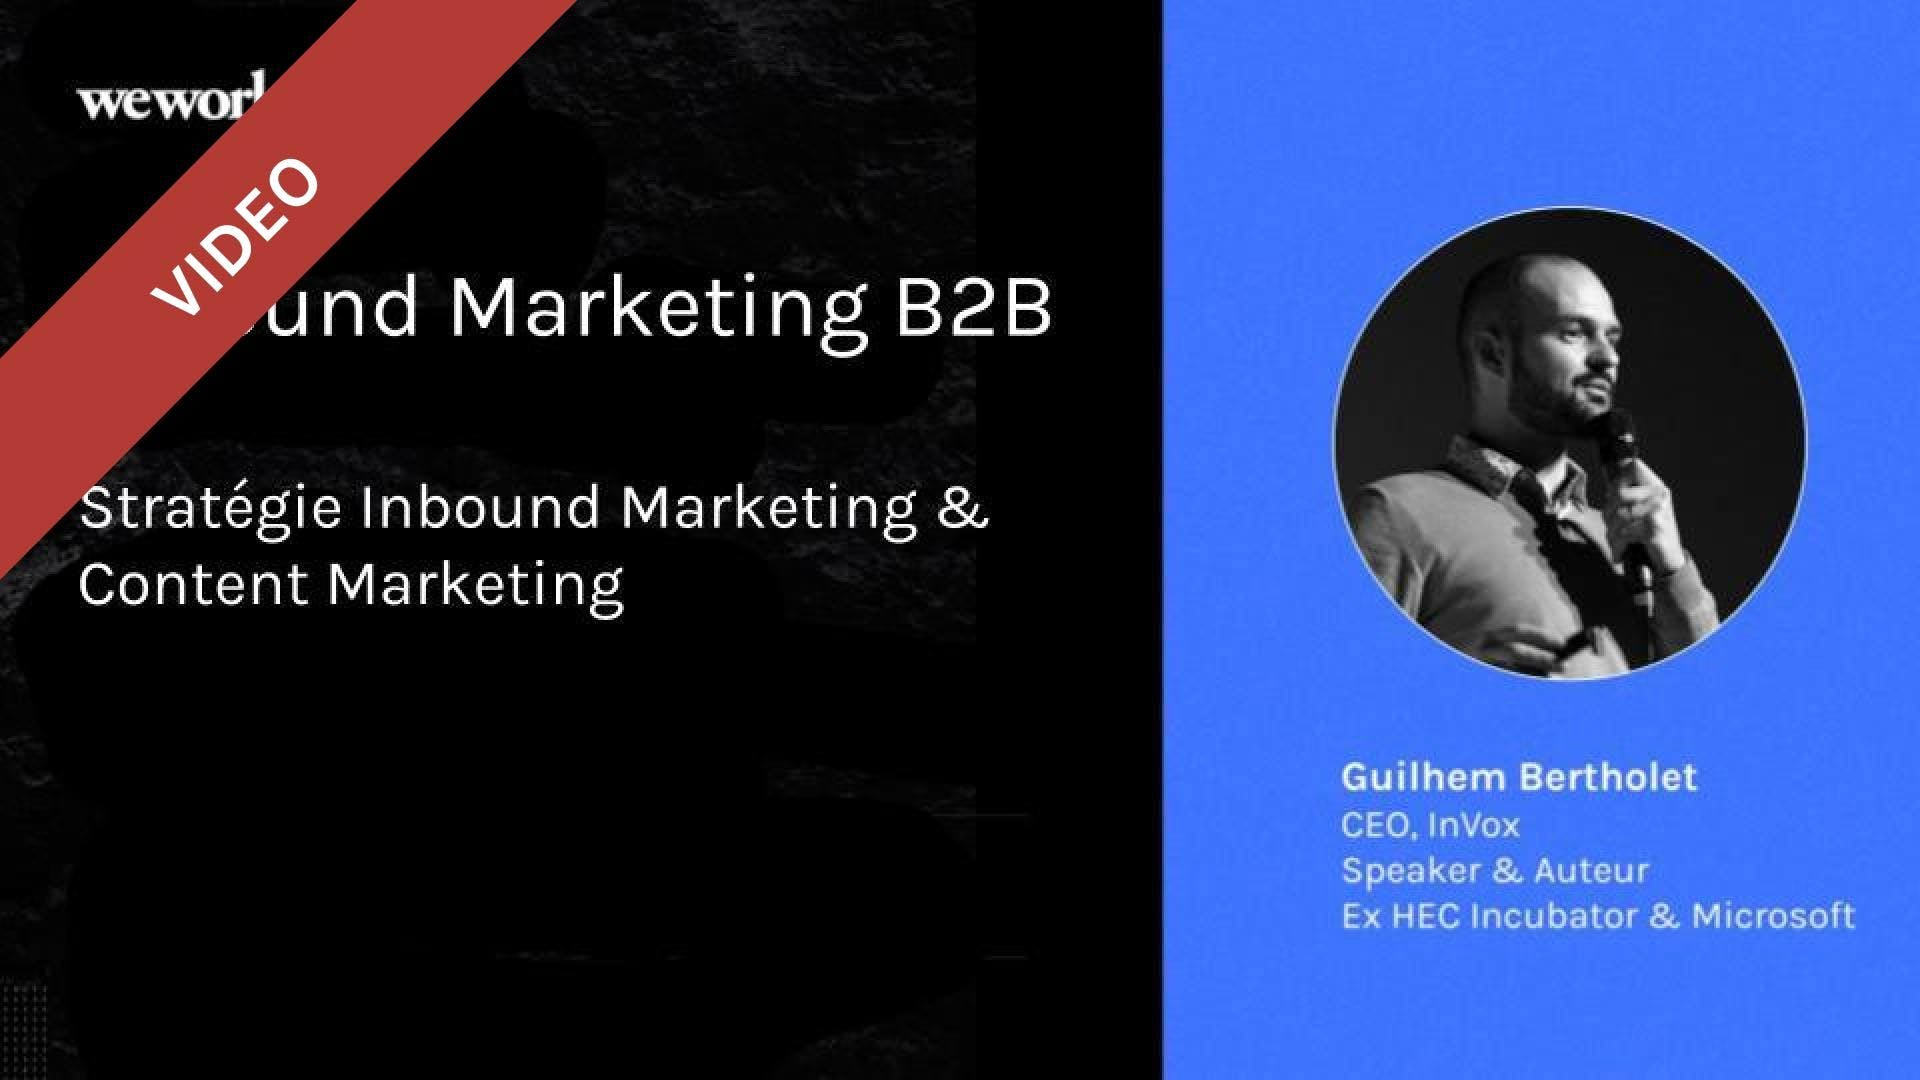 Inbound Marketing B2B  - Stratégie Inbound Marketing & Content Marketing